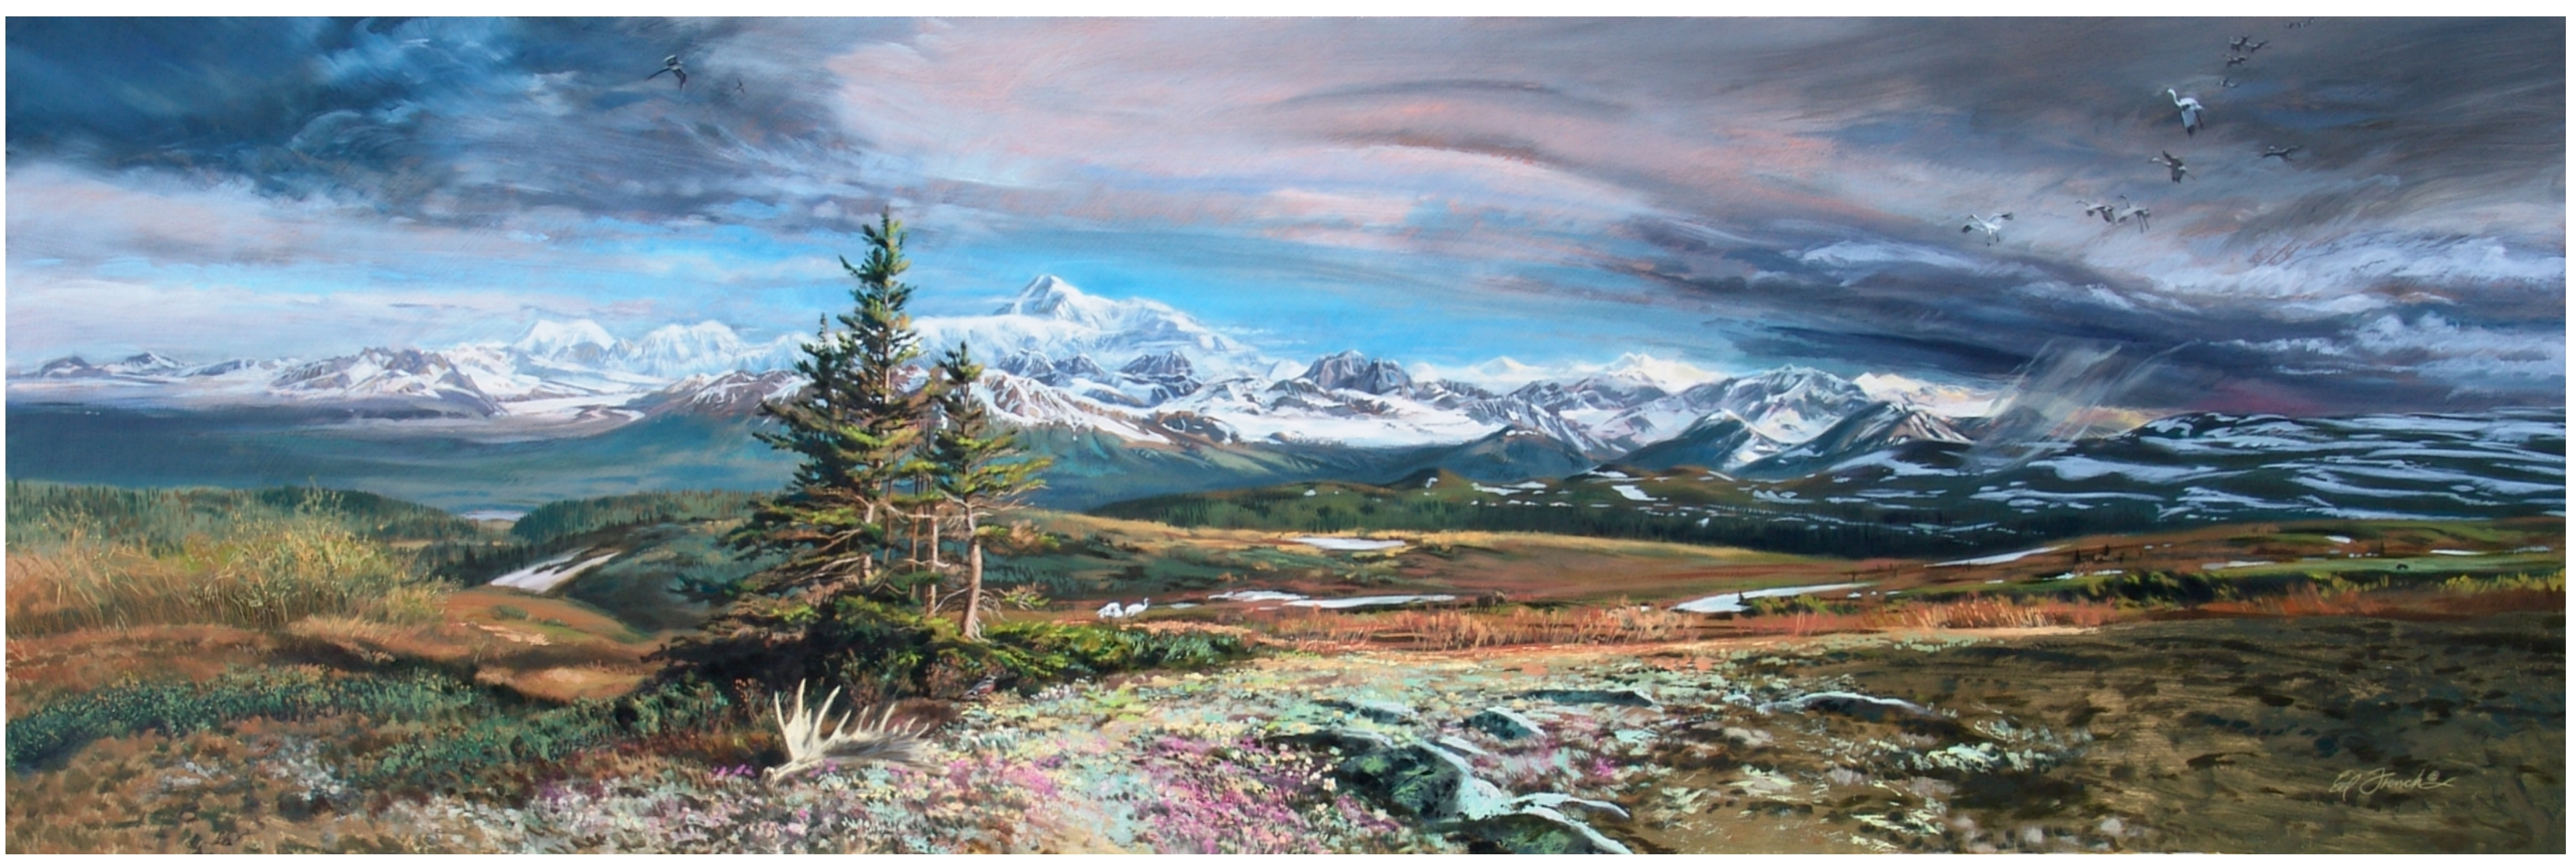 Denali Symphony artwork by Ed French - art listed for sale on Artplode